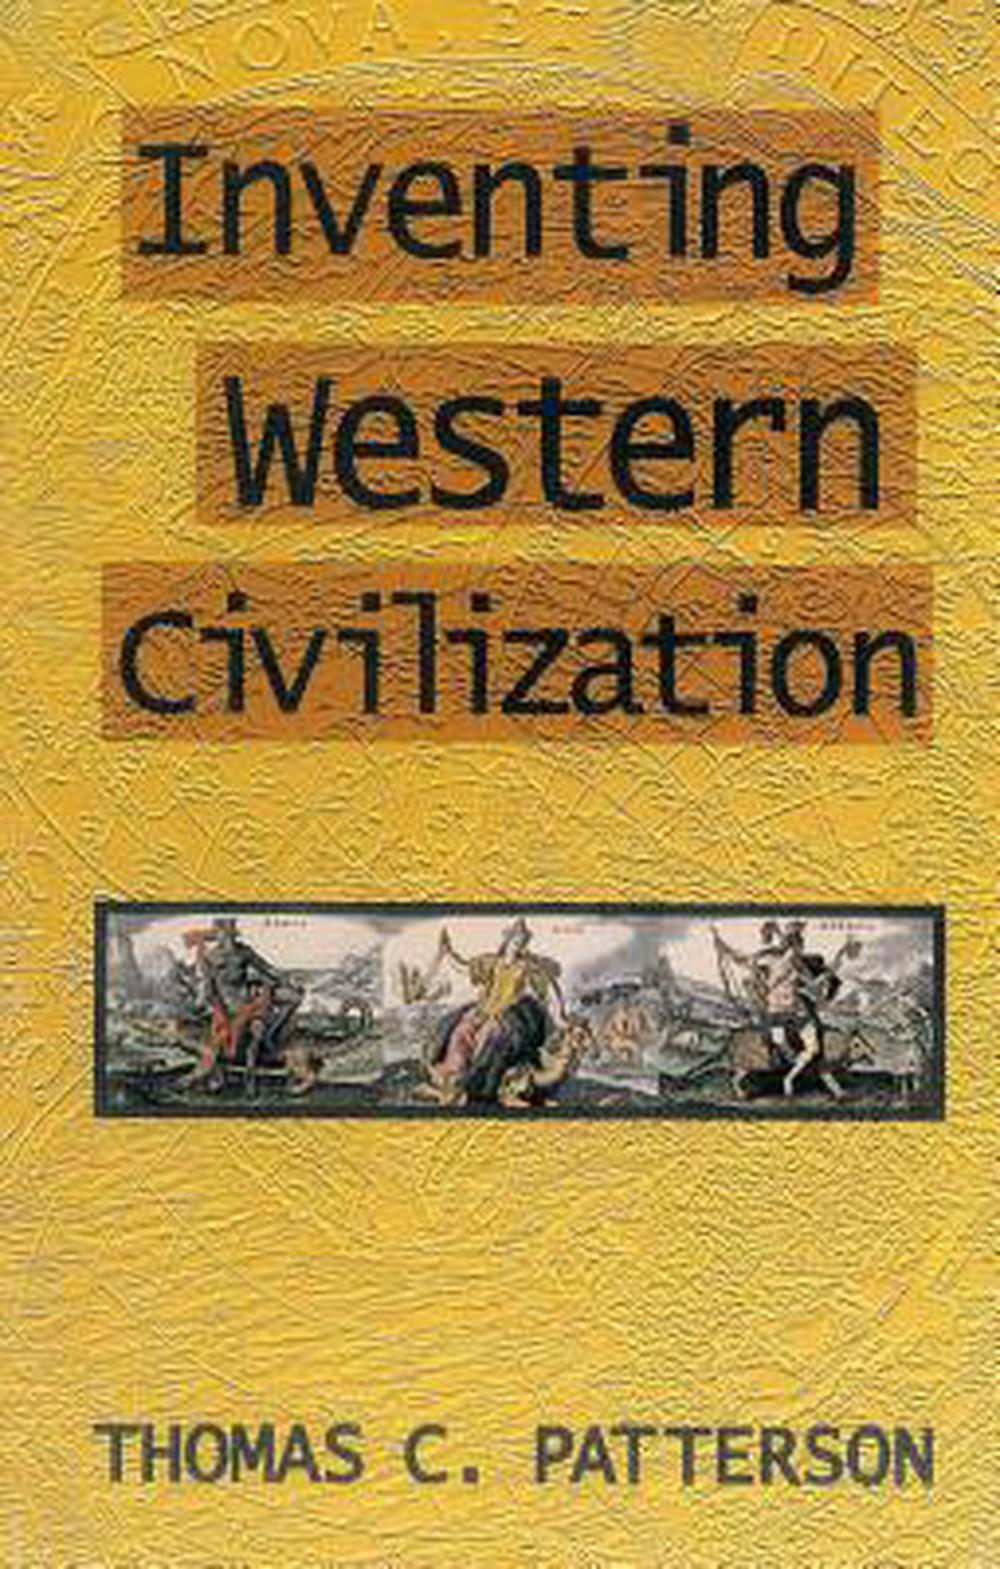 Inventing western civilization, critique de la civilisation